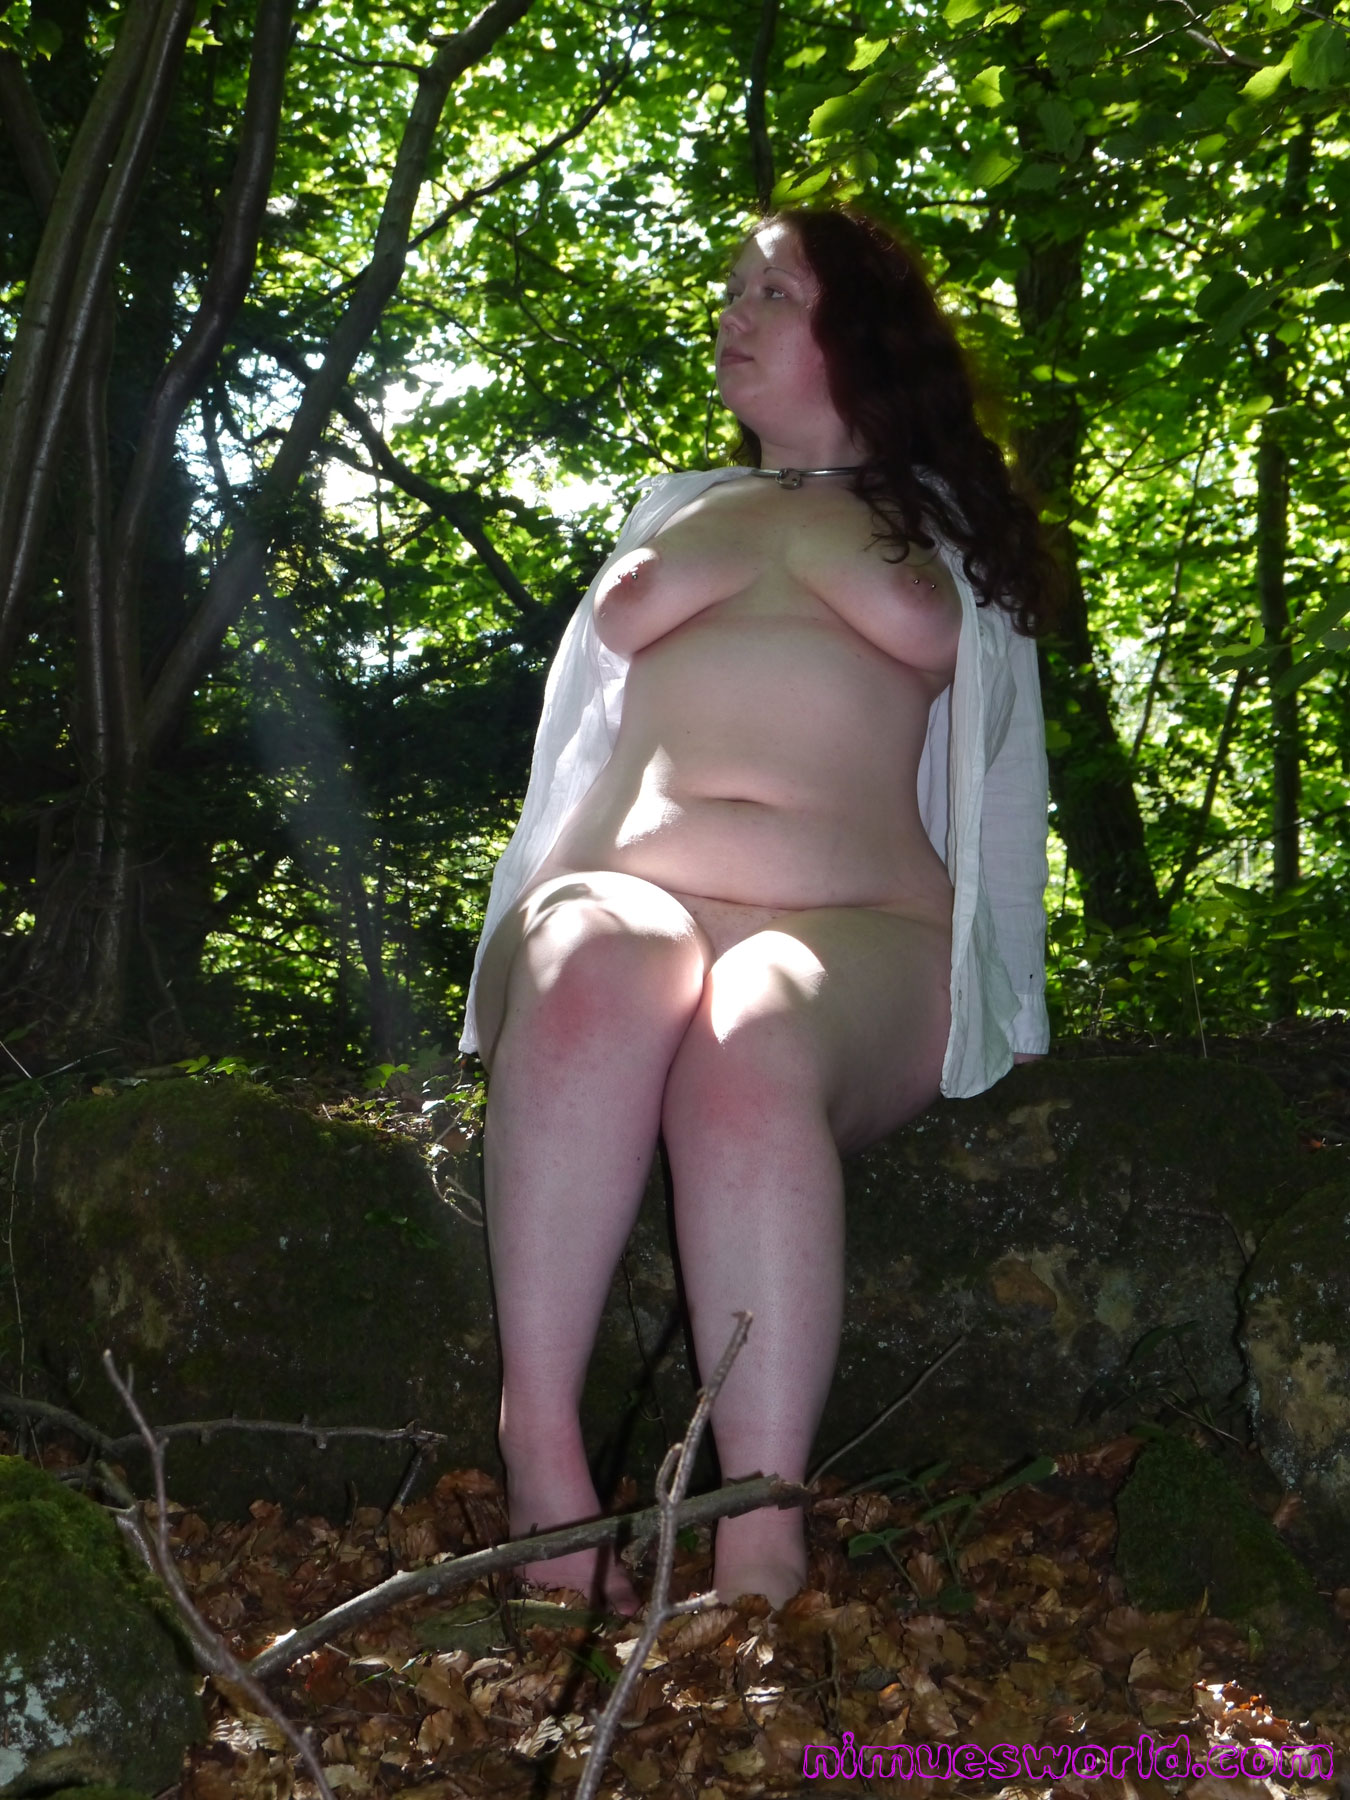 Nude outdoors chubby you were